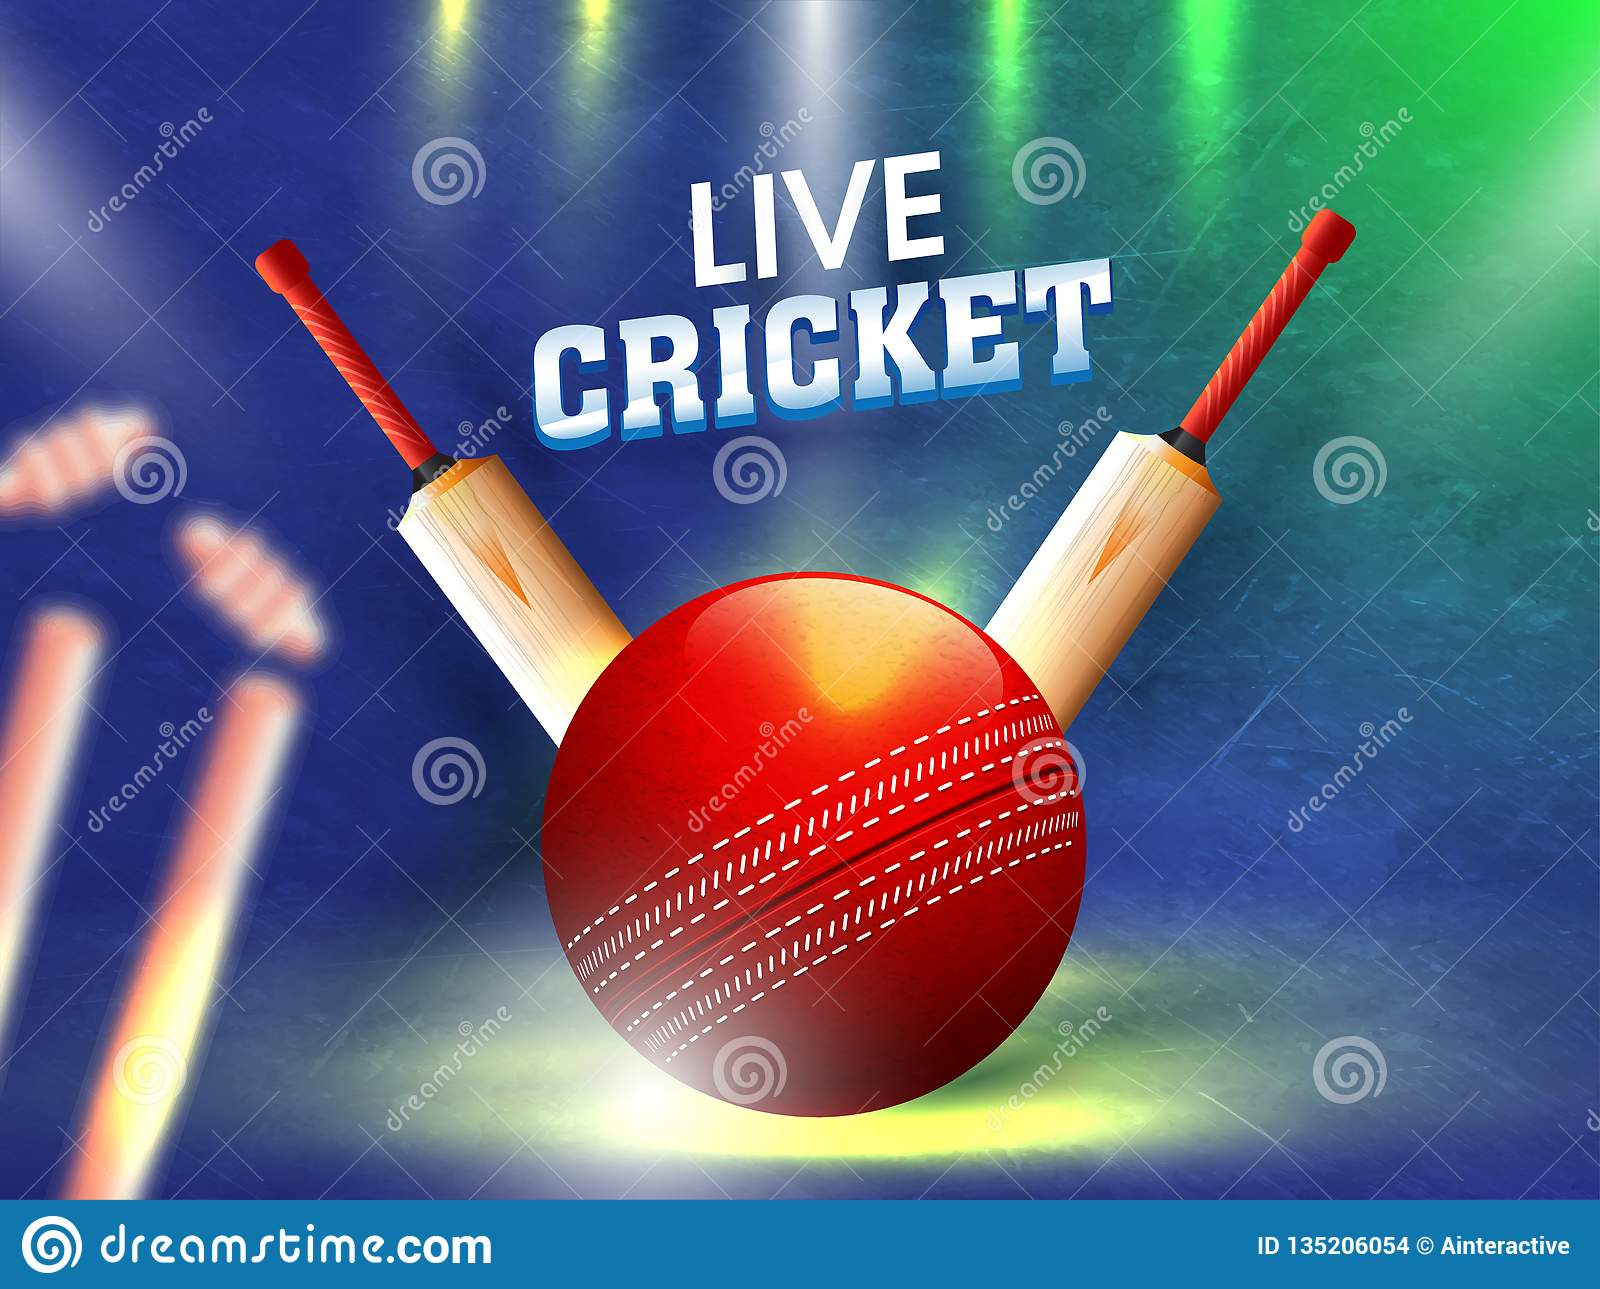 Vector Illustration Of Cricket Ball With Bat On Blurry Background